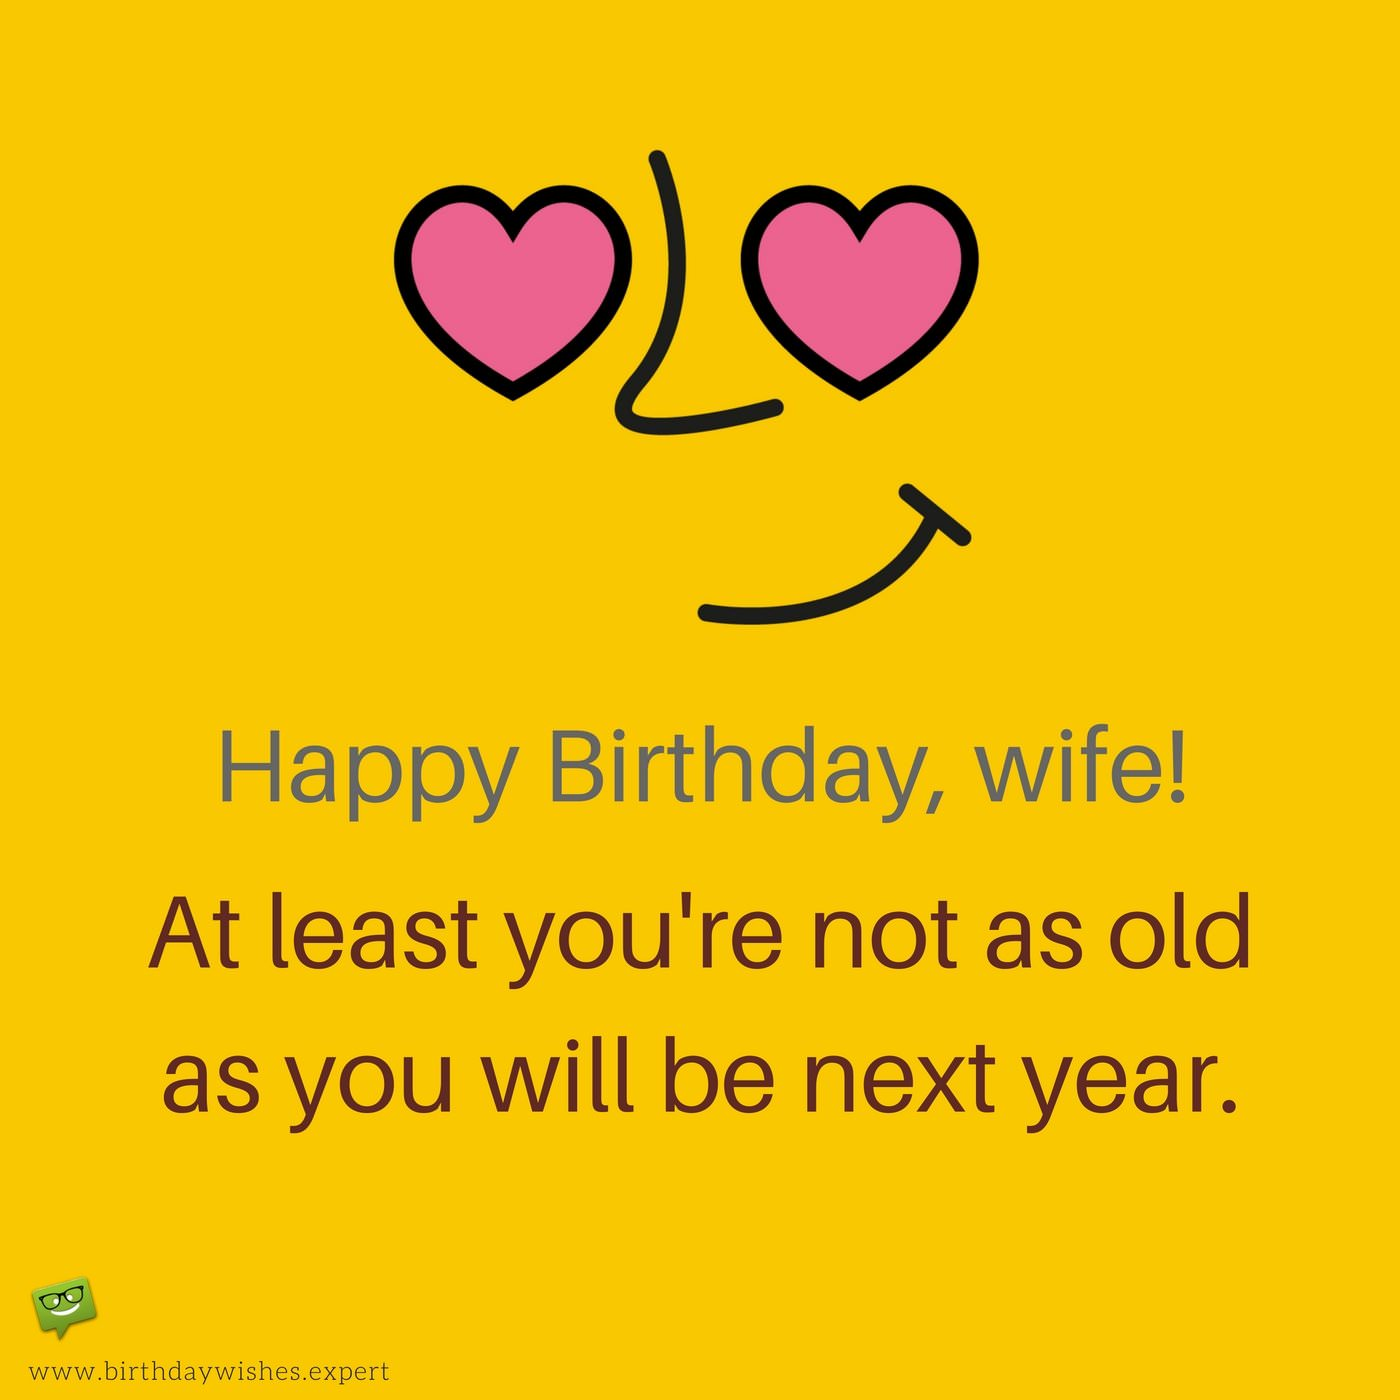 The funniest wishes to make your wife smile on her birthday happy birthday wife at least youre not as old as you will be next year kristyandbryce Gallery